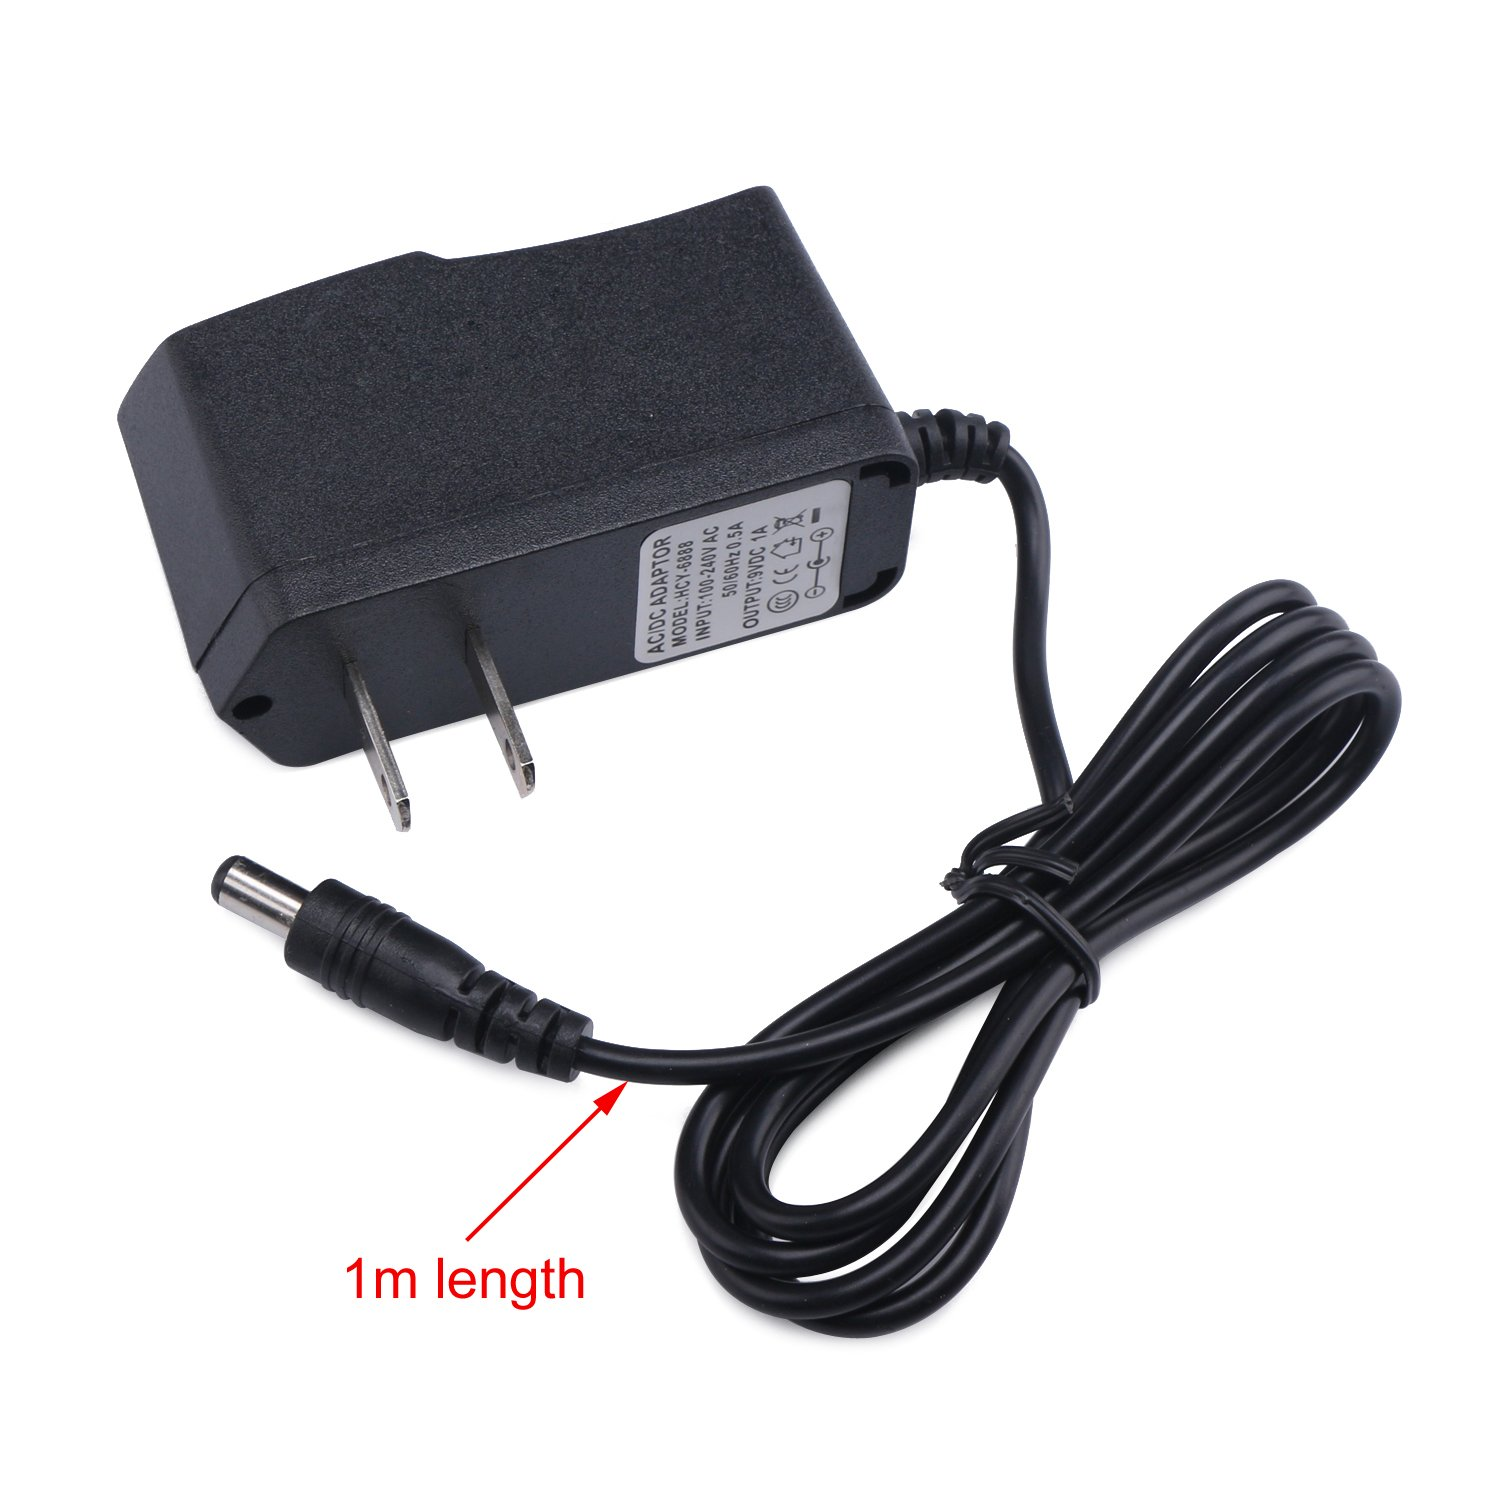 DROK 091038 9V 1A Power Adapter 1000MA Tablet PC Switching Power Supply Regulator 110V 220V AC Input USA Plug for ADSL Router Devices by DROK (Image #6)